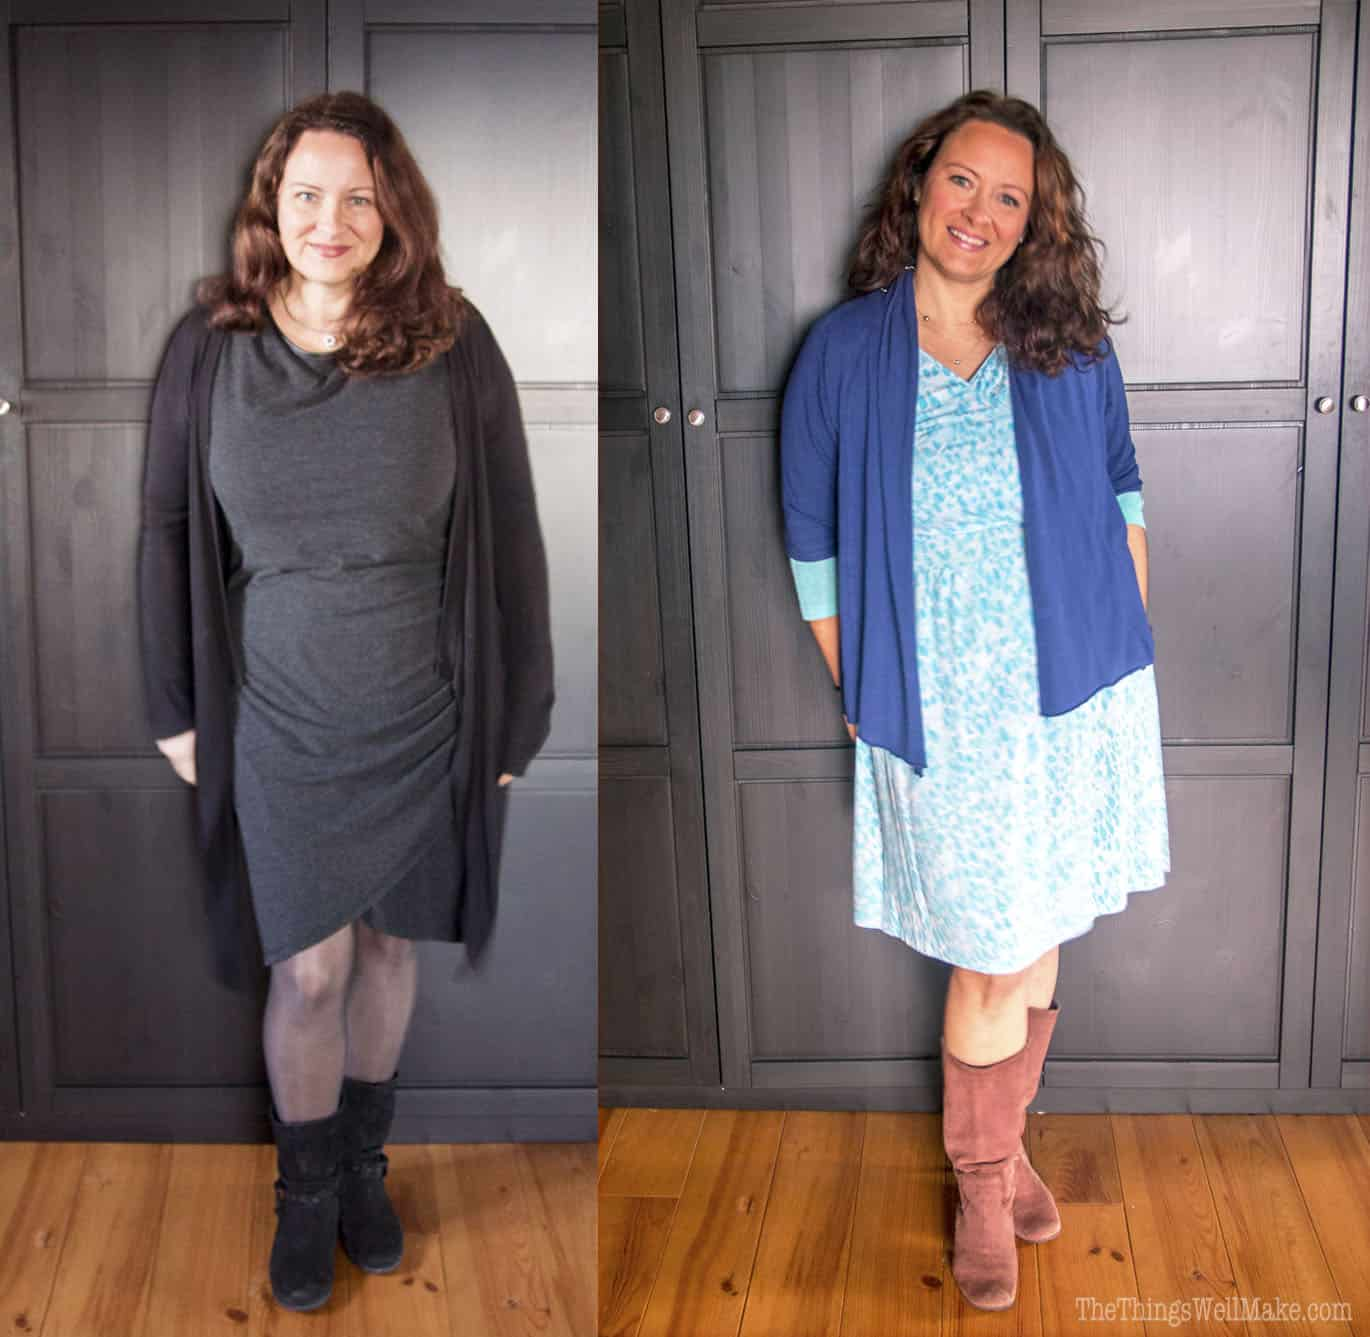 Following the Dressing Your Truth Program has been a lot of fun, and has given me a new insight into who I really am. Check out my review, my Type 1 before and after pictures, and how I profiled myself.